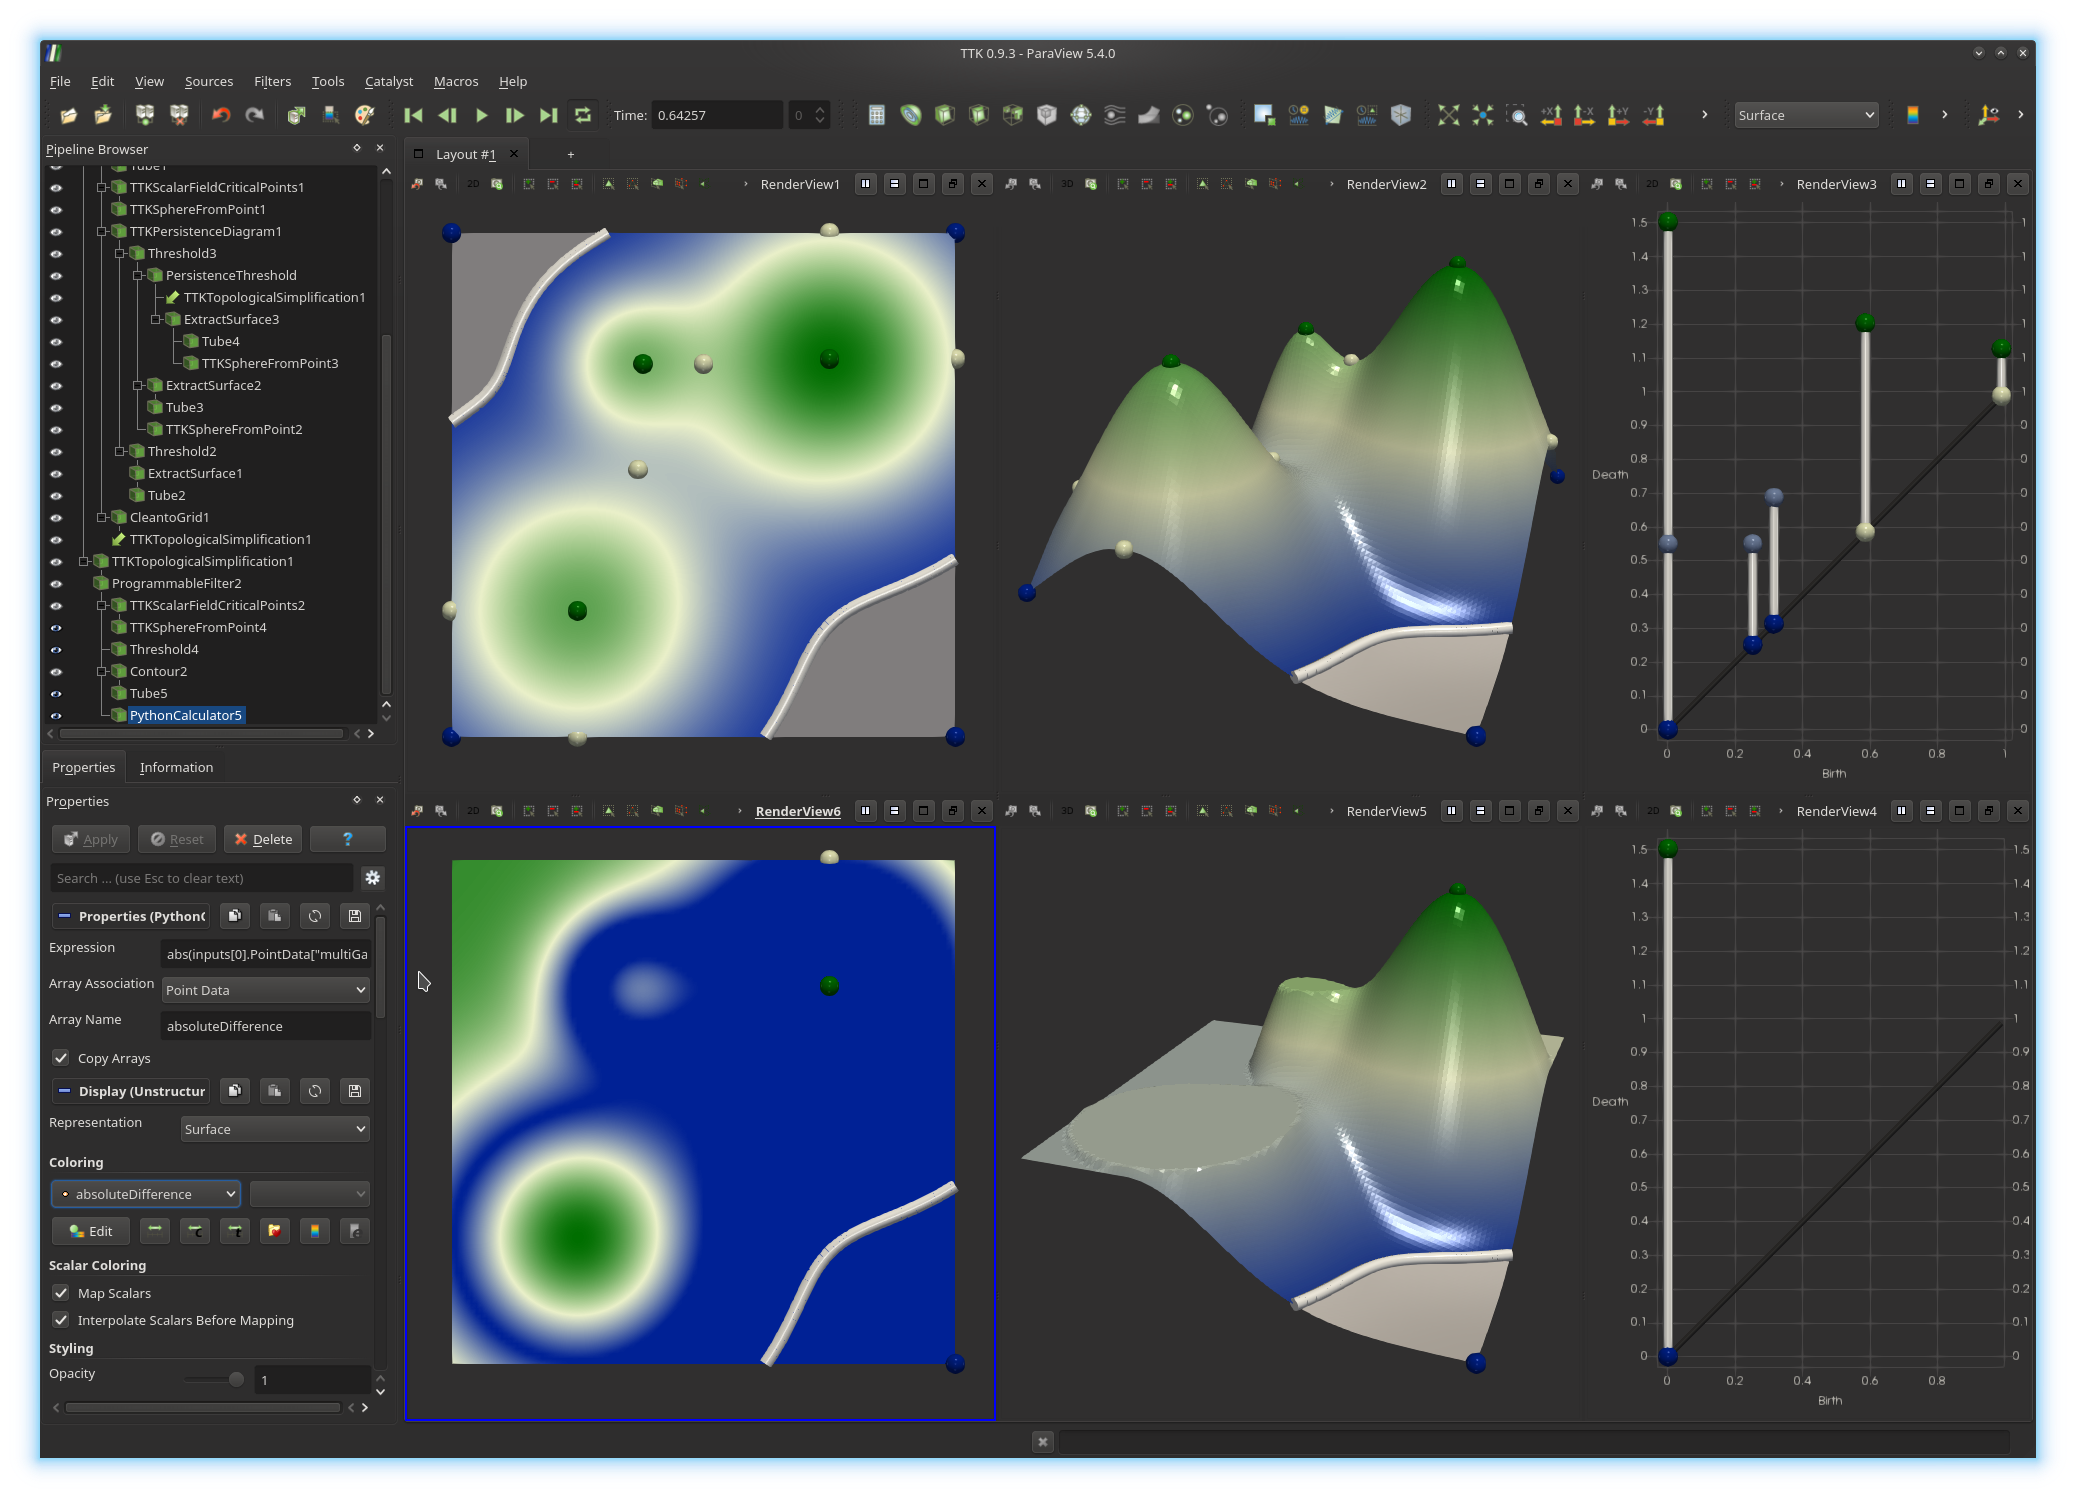 TTK - the Topology ToolKit - Topological Data Analysis and